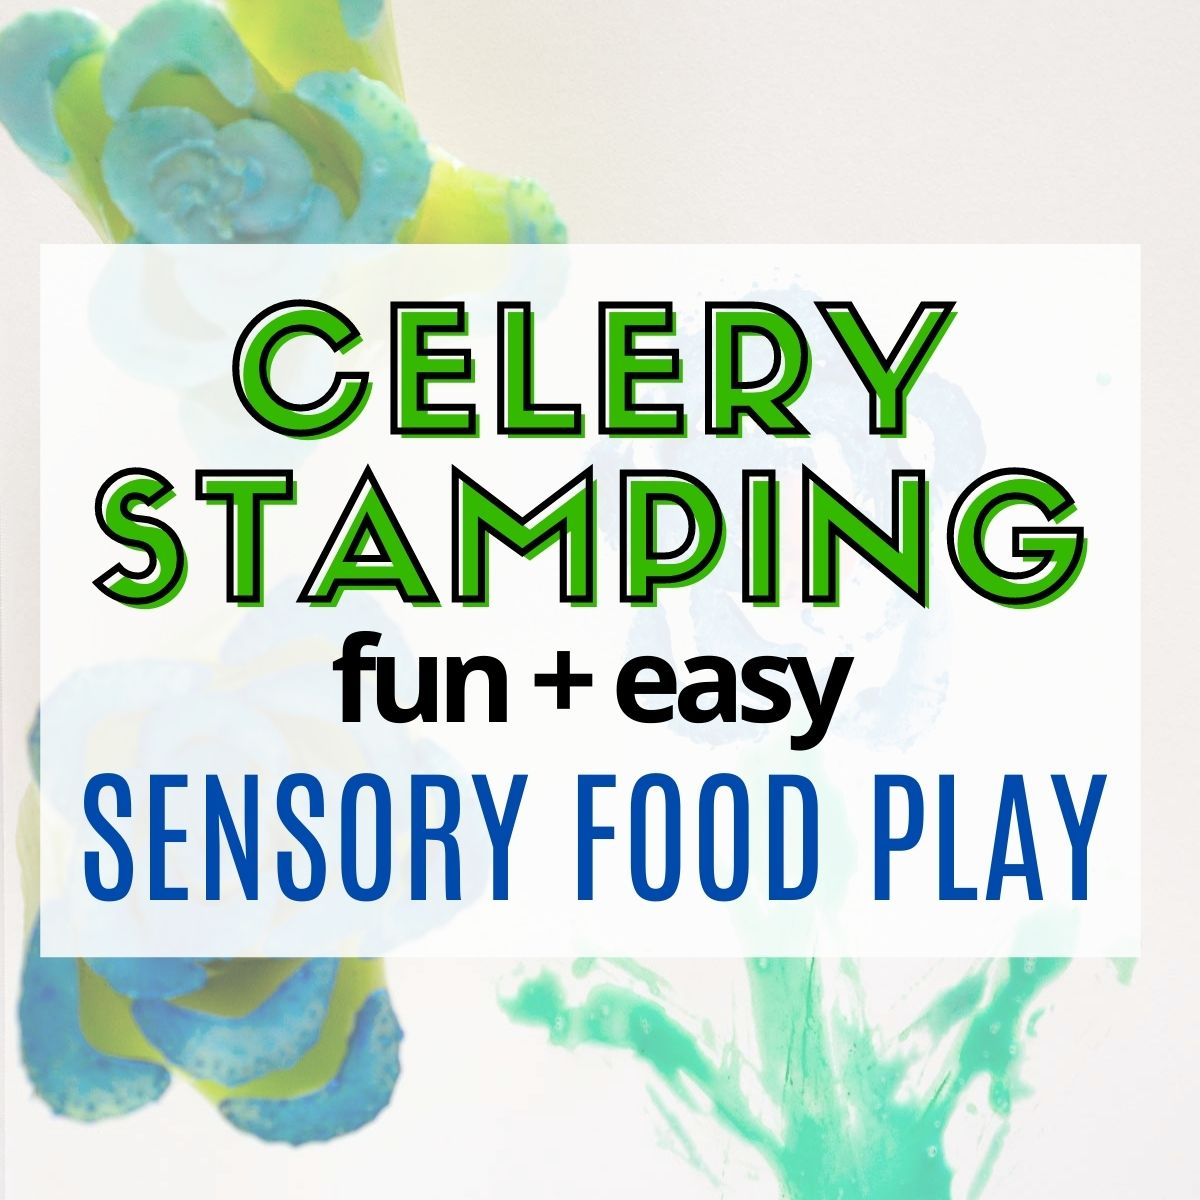 Graphic of celery stamping sensory food play.